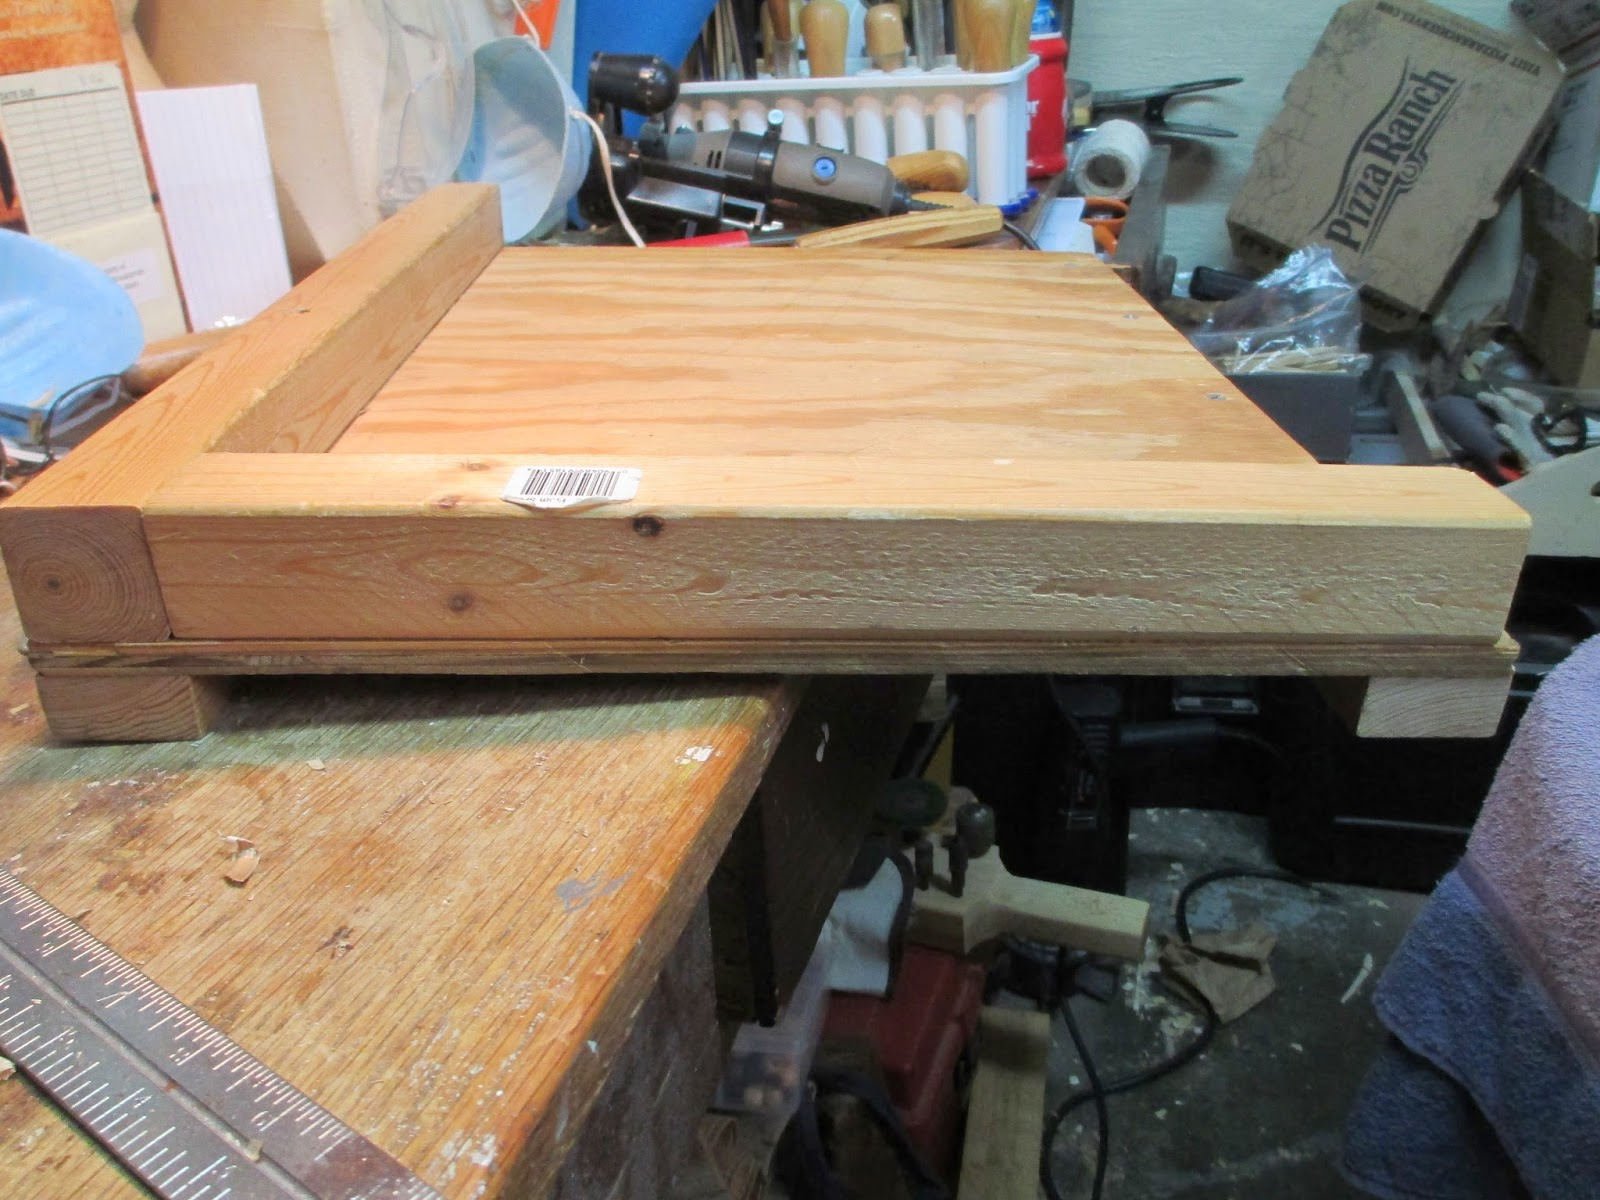 Knotty wood spirits bench hook